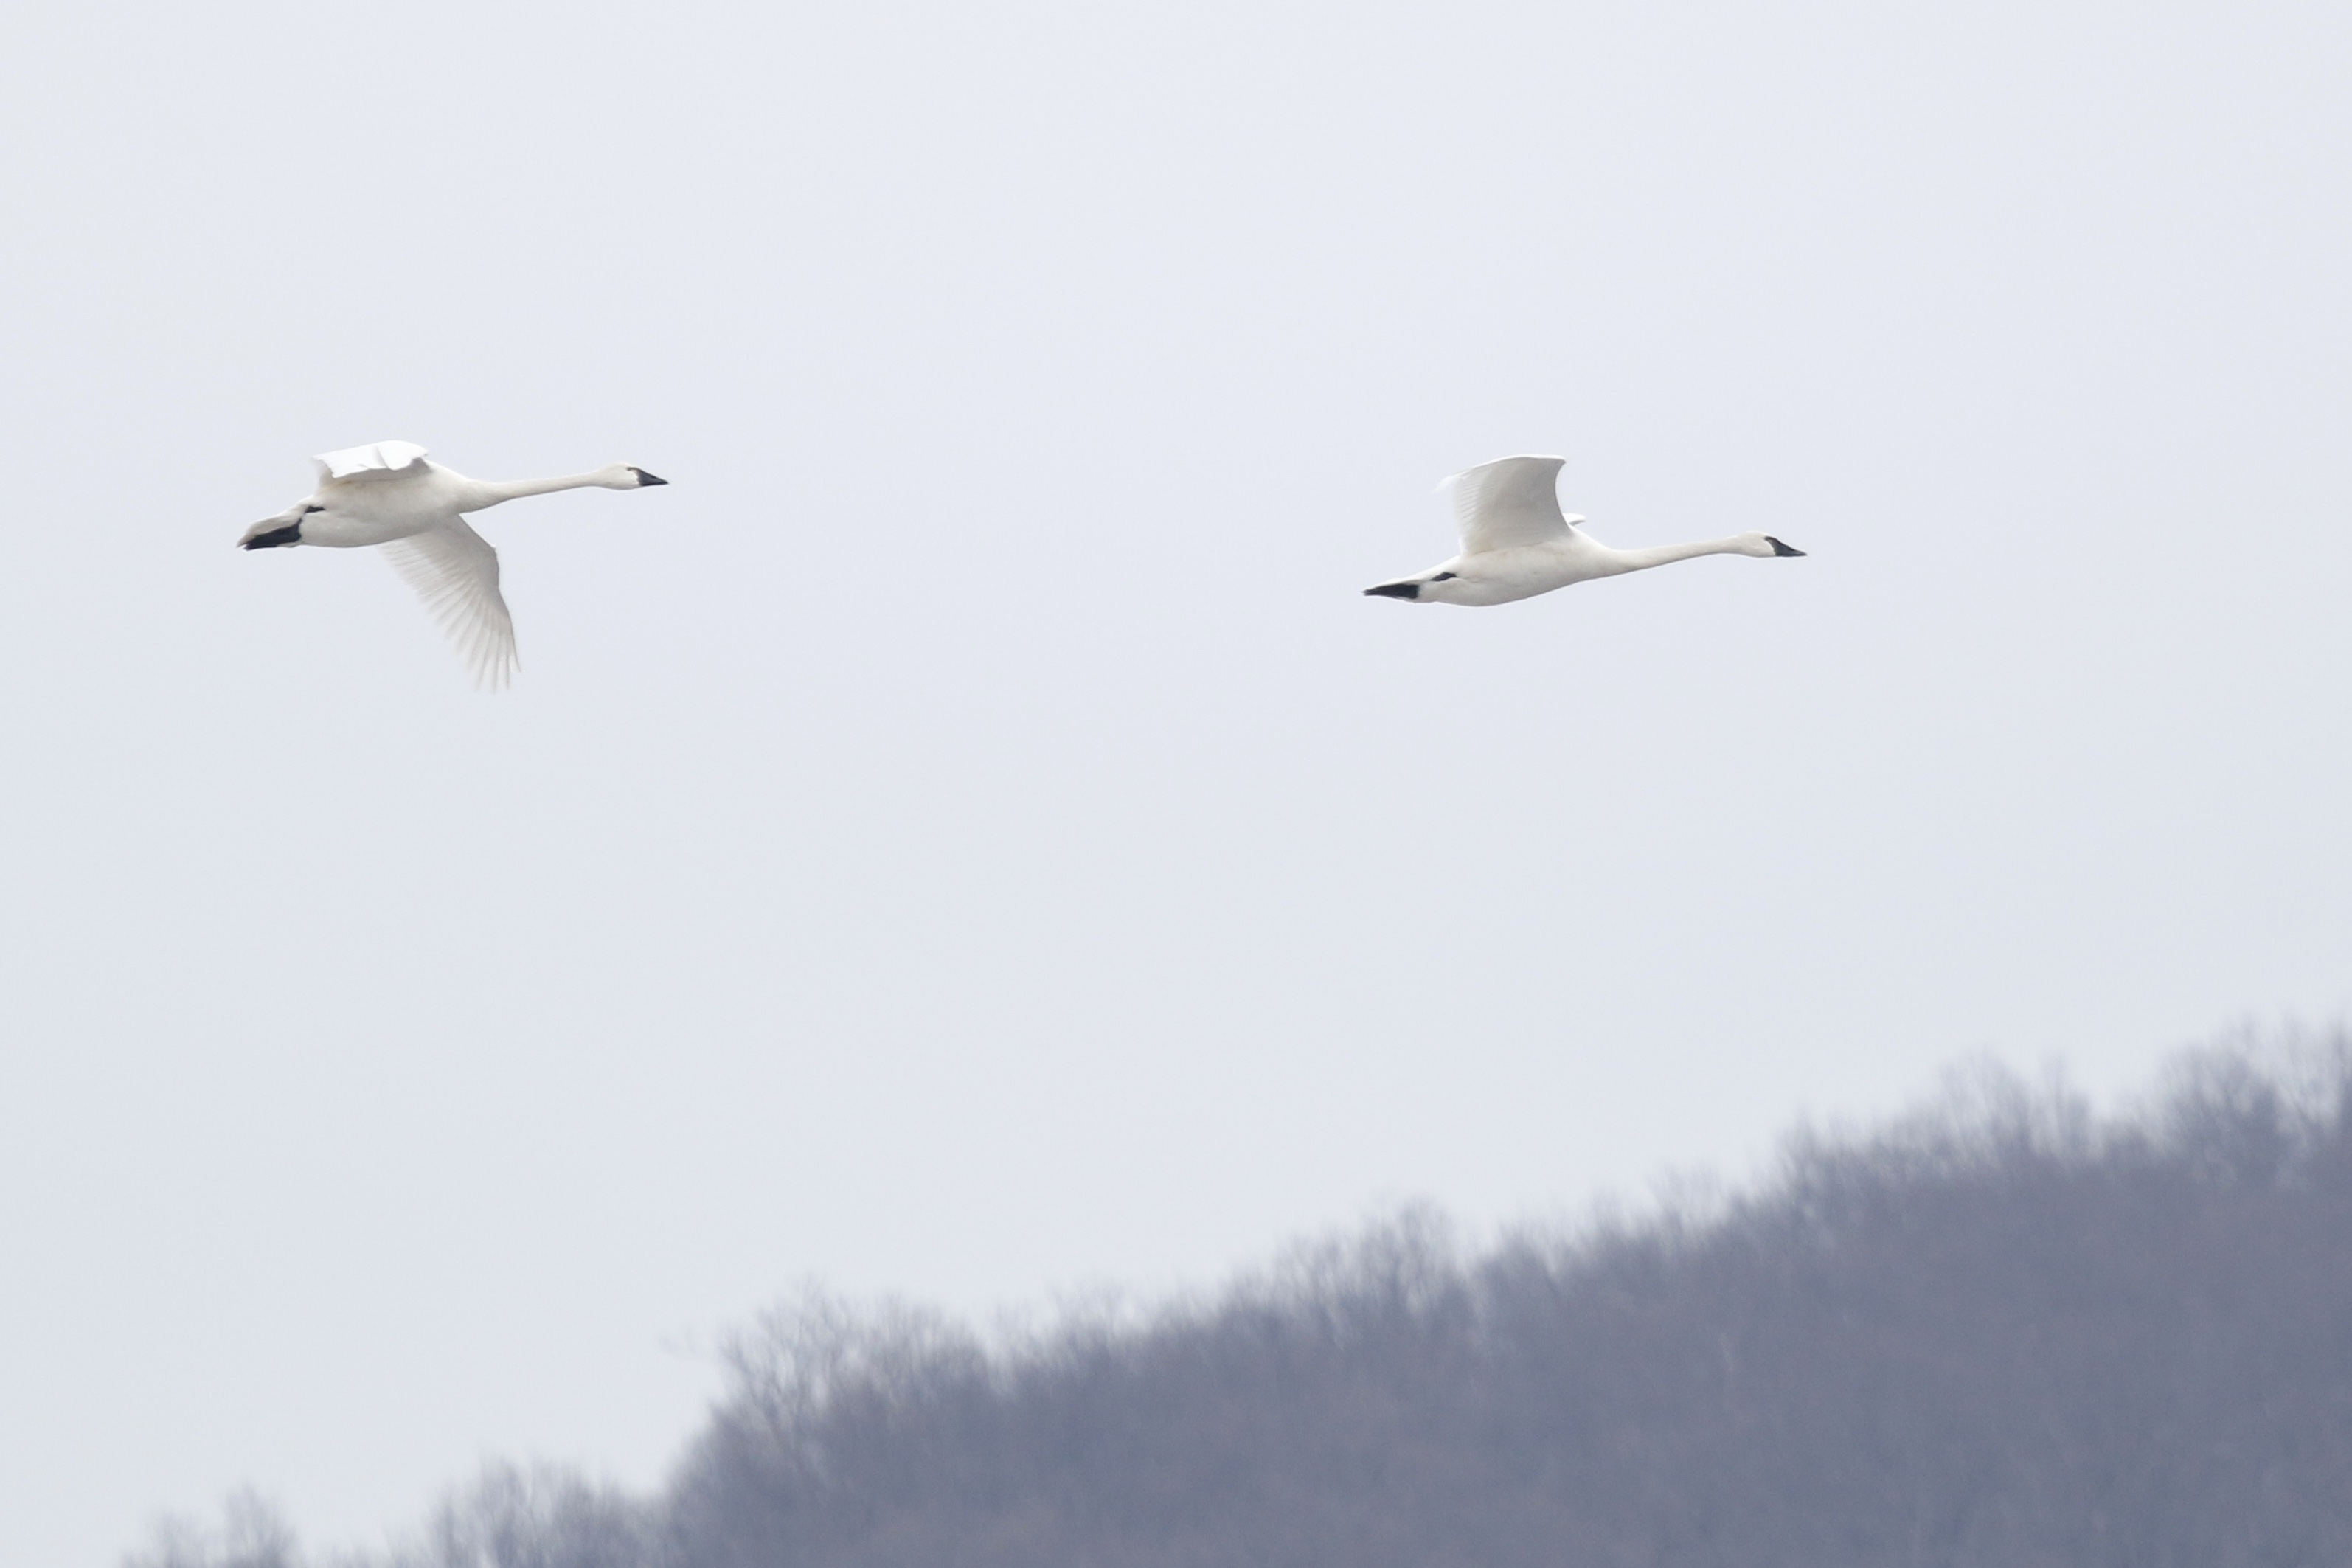 ~I was pretty psyched to see a pair of Tundra Swans fly in and land in the refuge. Walkill River NWR, 3/21/15.~